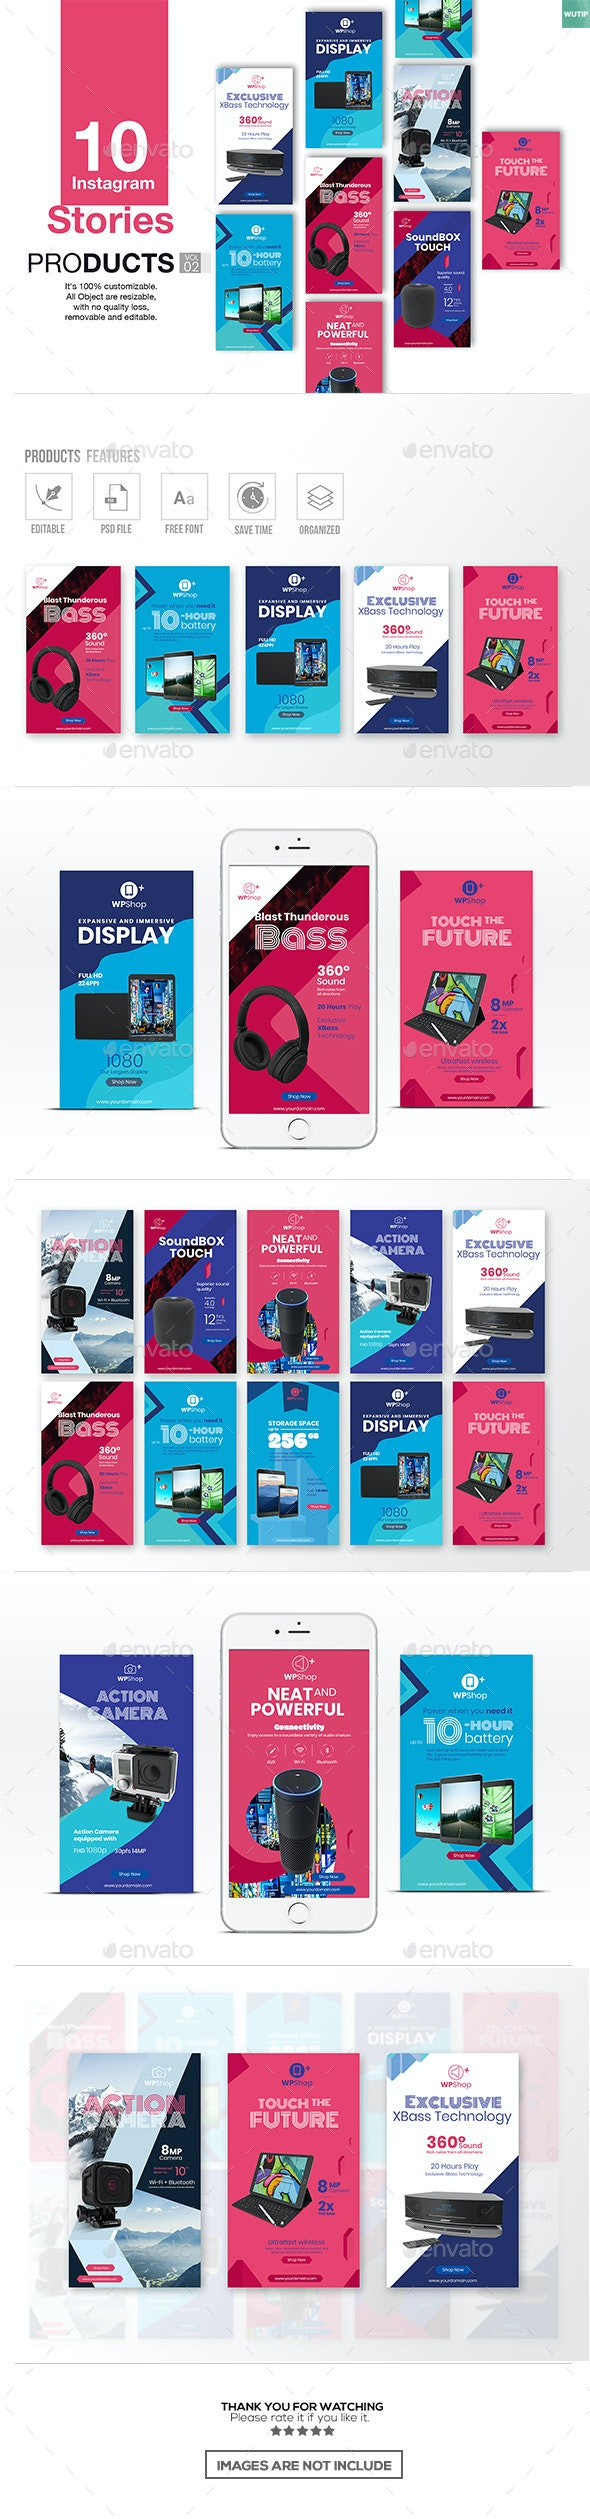 10 Instagram Stories-Products Vol02 - Miscellaneous Social Media